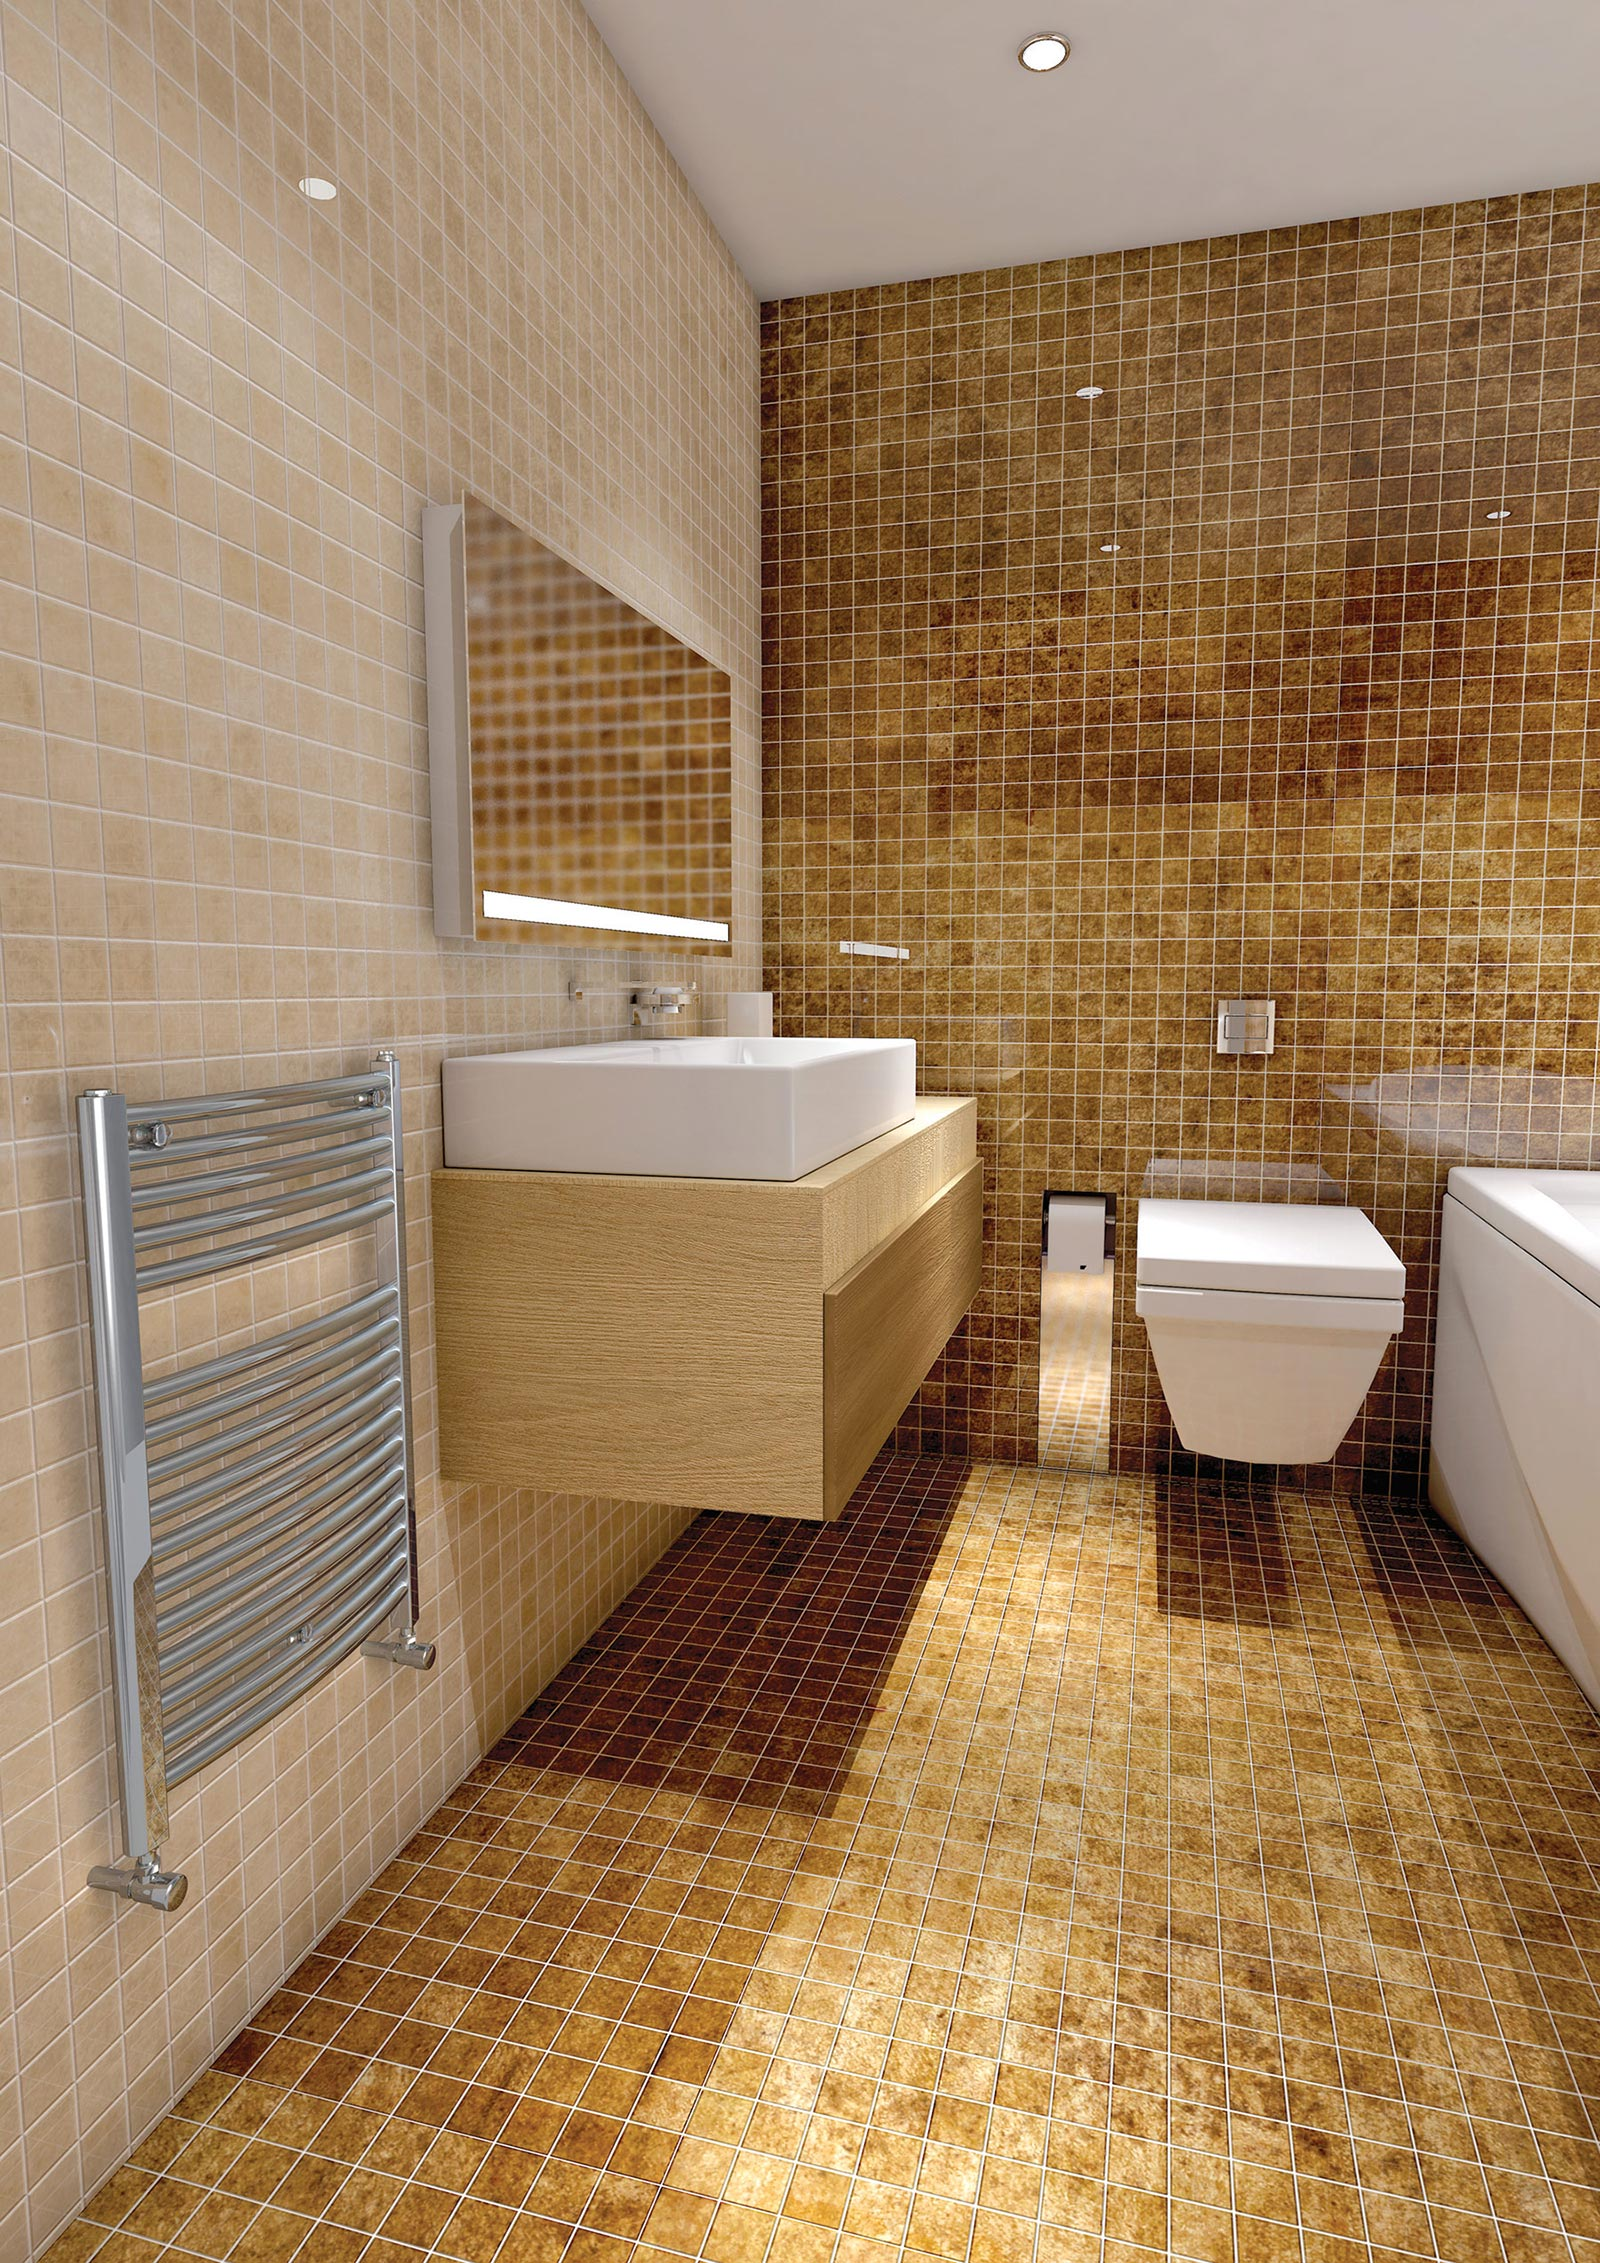 Small heated towel rails for bathrooms - Towel Rail Heated Stelrad Towel Rails For Small Bathrooms